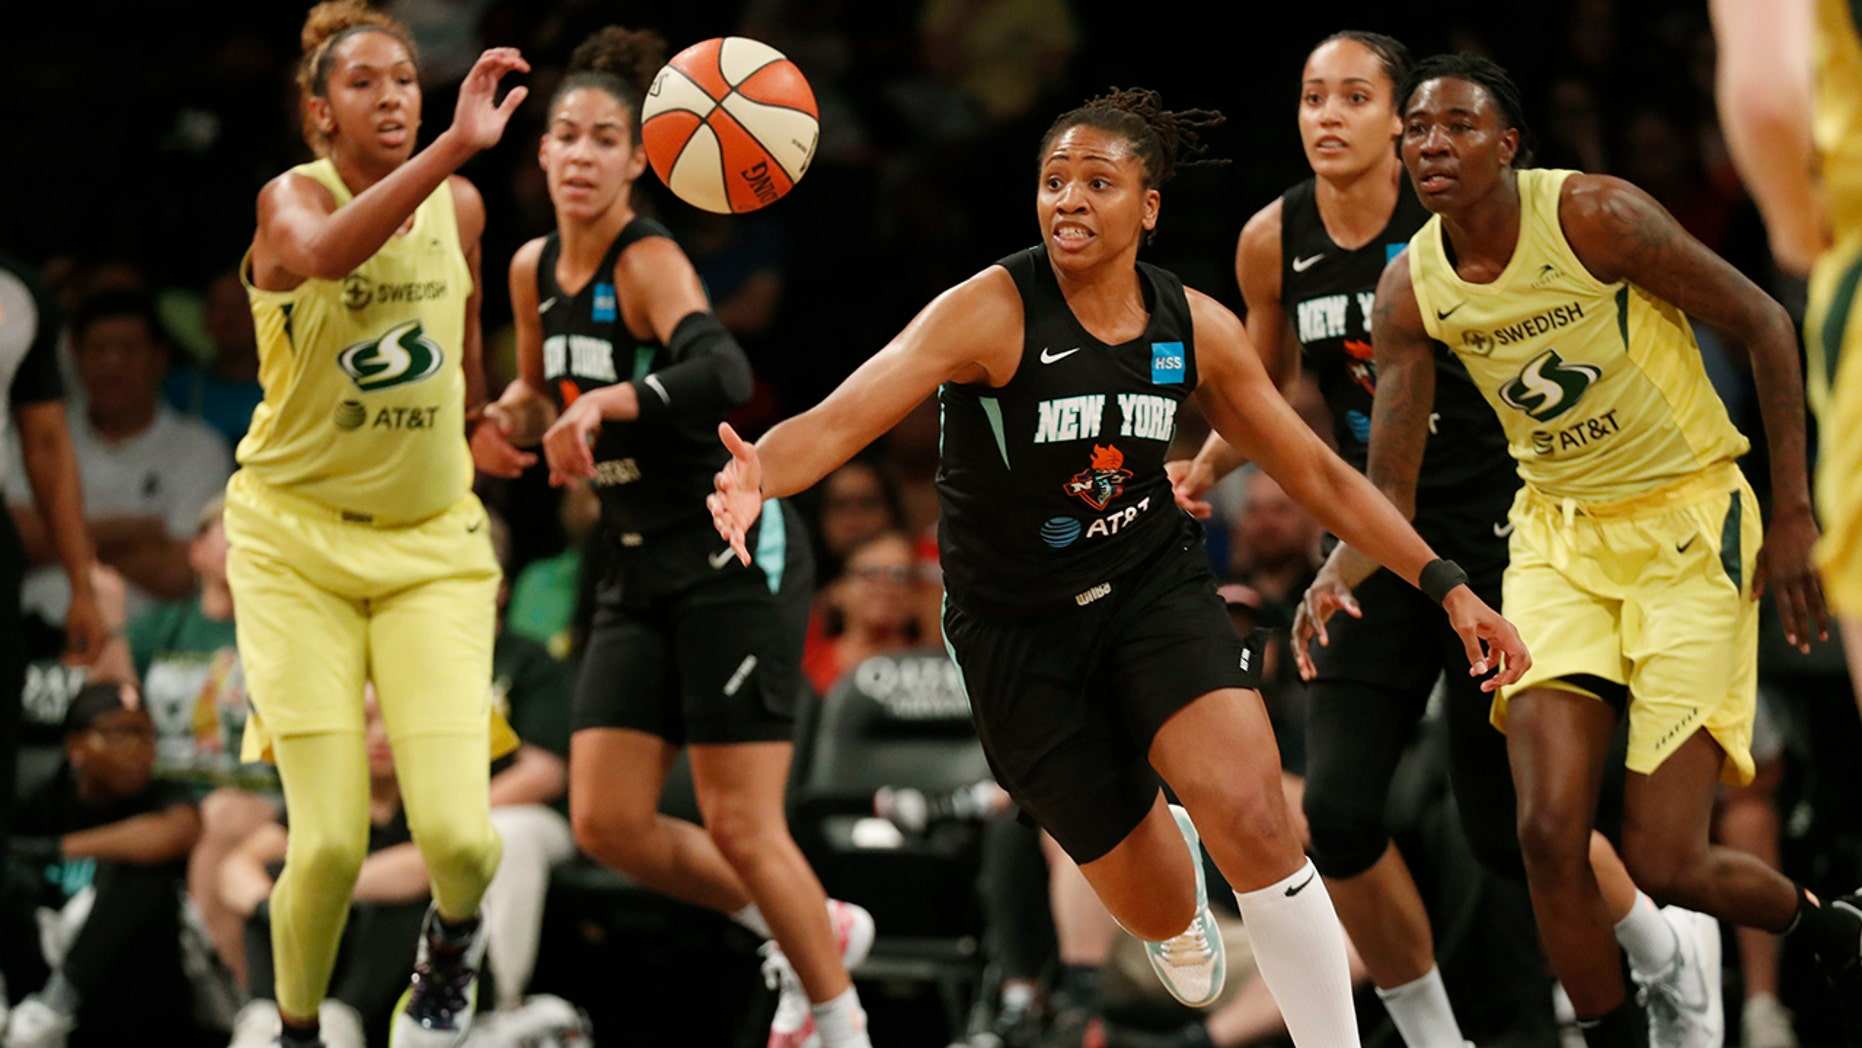 FILE - In this Aug. 11, 2019, file photo, New York Liberty guard Tanisha Wright, center, goes after a loose ball during the first half of the team's WNBA basketball game against the Seattle Storm at Barclays Center in New York. The Liberty will have a new home next year, playing their games at Barclays Center. (AP Photo/Kathy Willens, File)